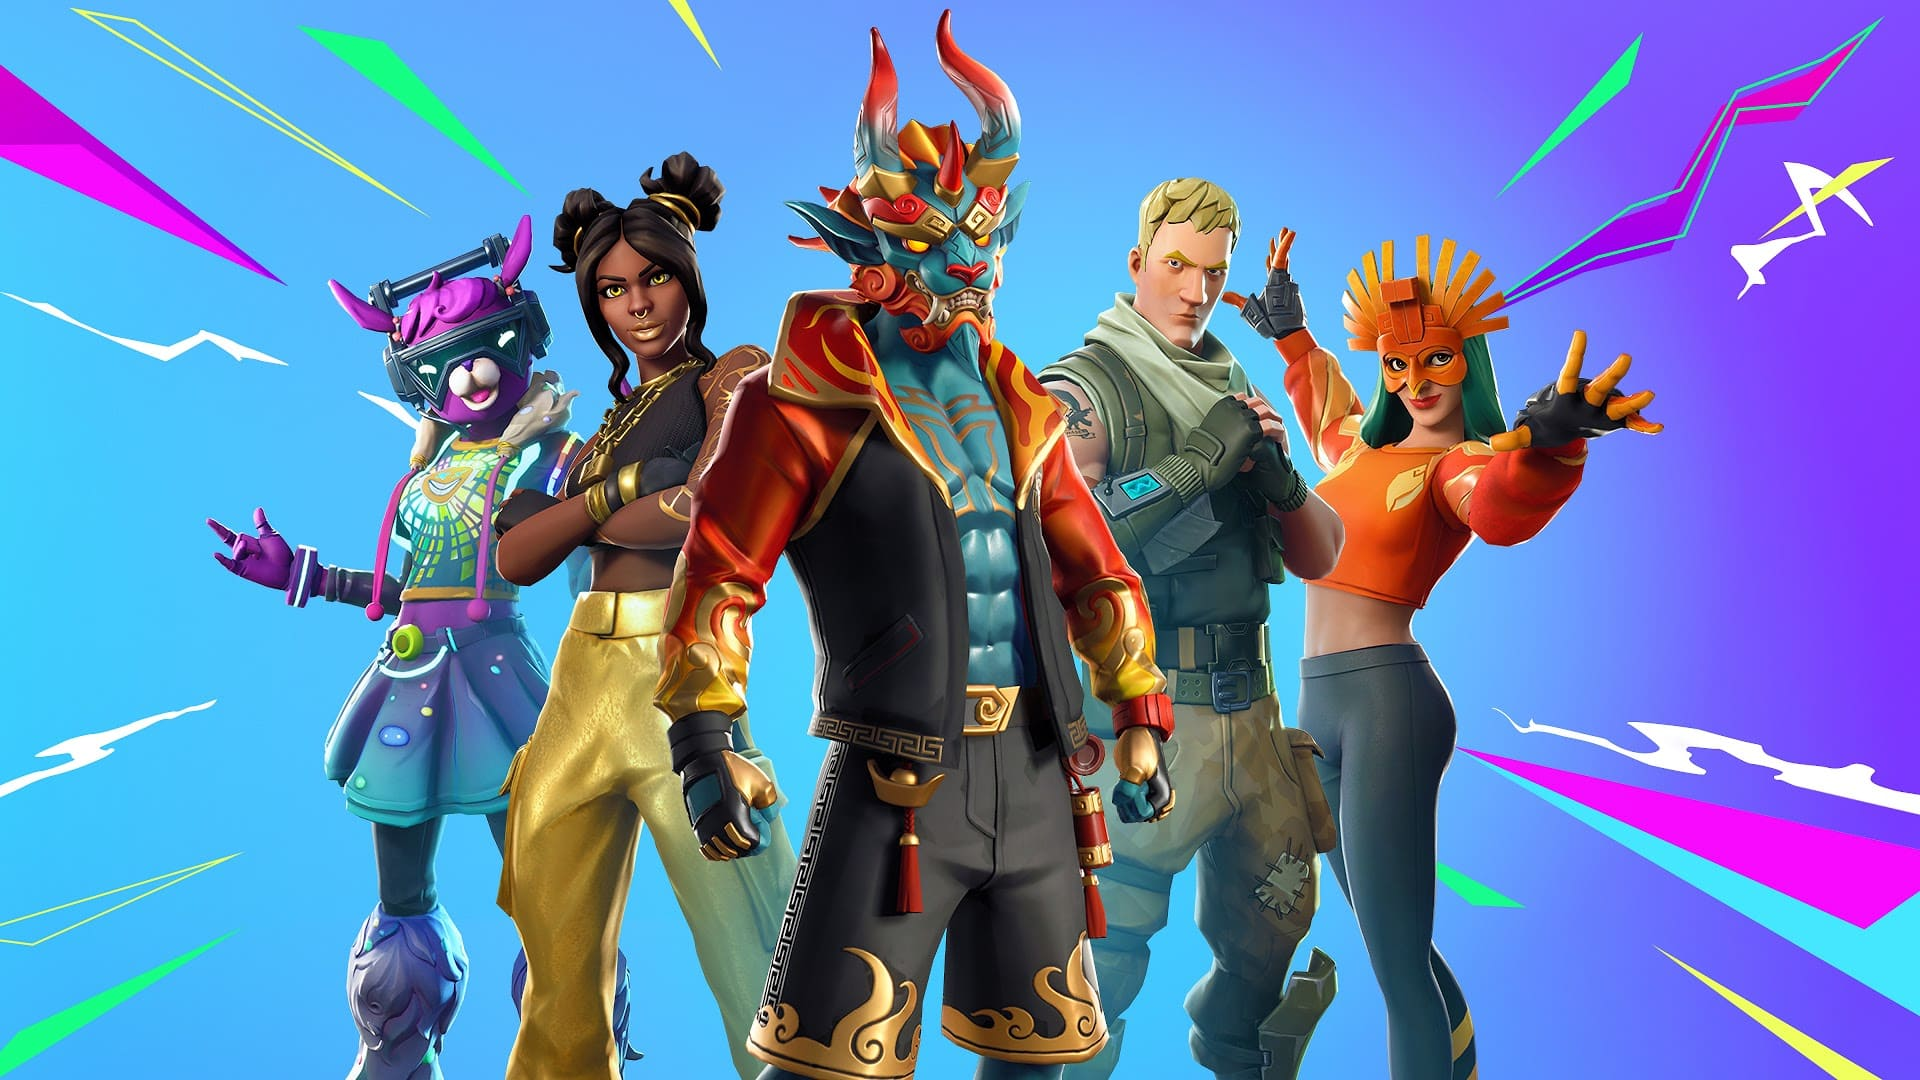 Top 95 Fortnite Wallpapers 4k Hd Fortnite is the biggest gaming sensation in recent memory, having made several appearances in a number of mainstream news outlets. getty wallpapers